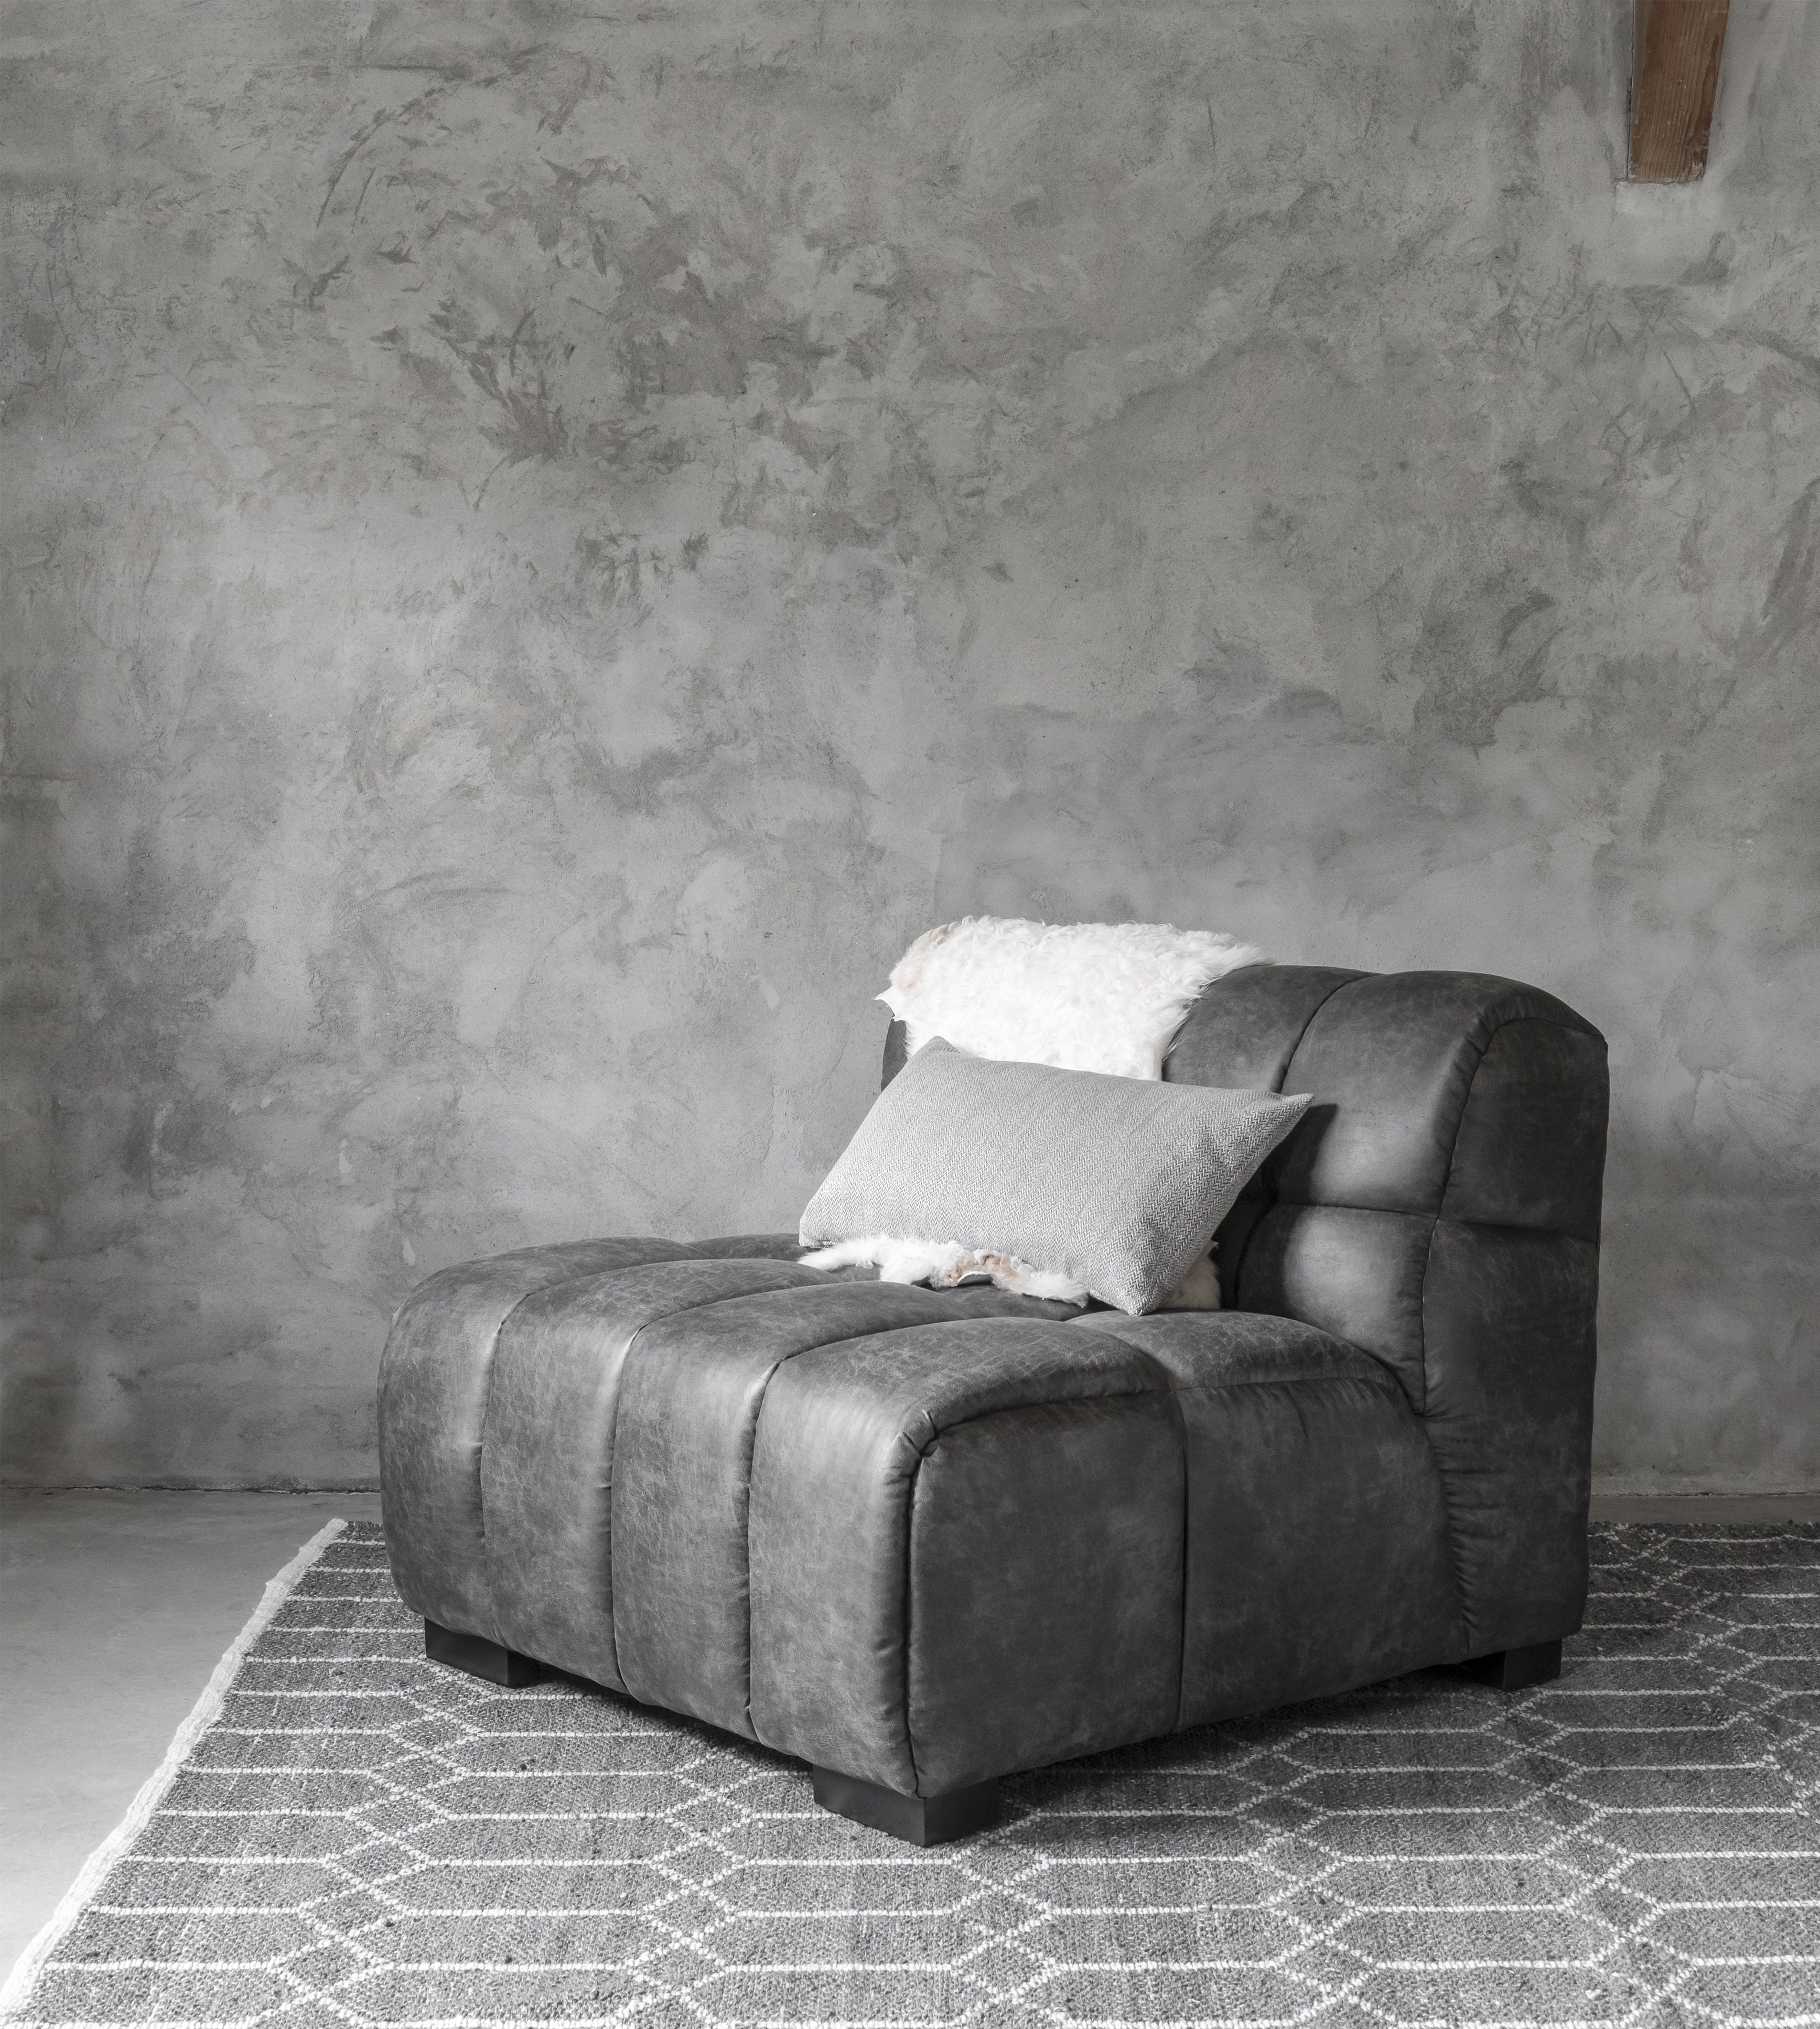 stijlvolle fauteuil